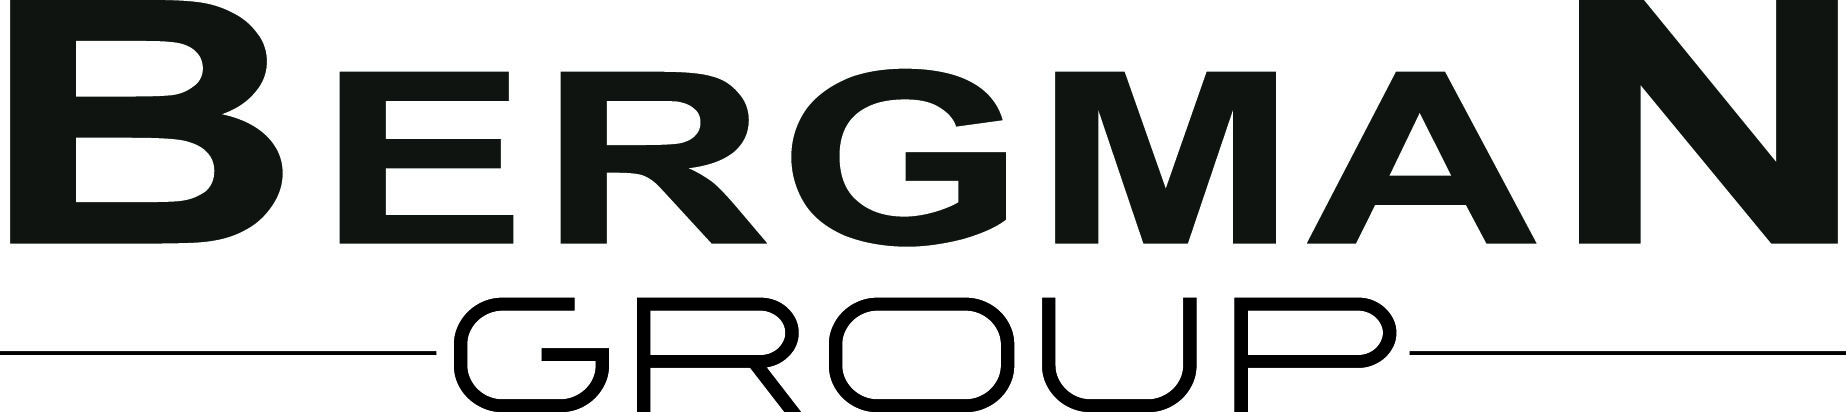 Bergman group logo